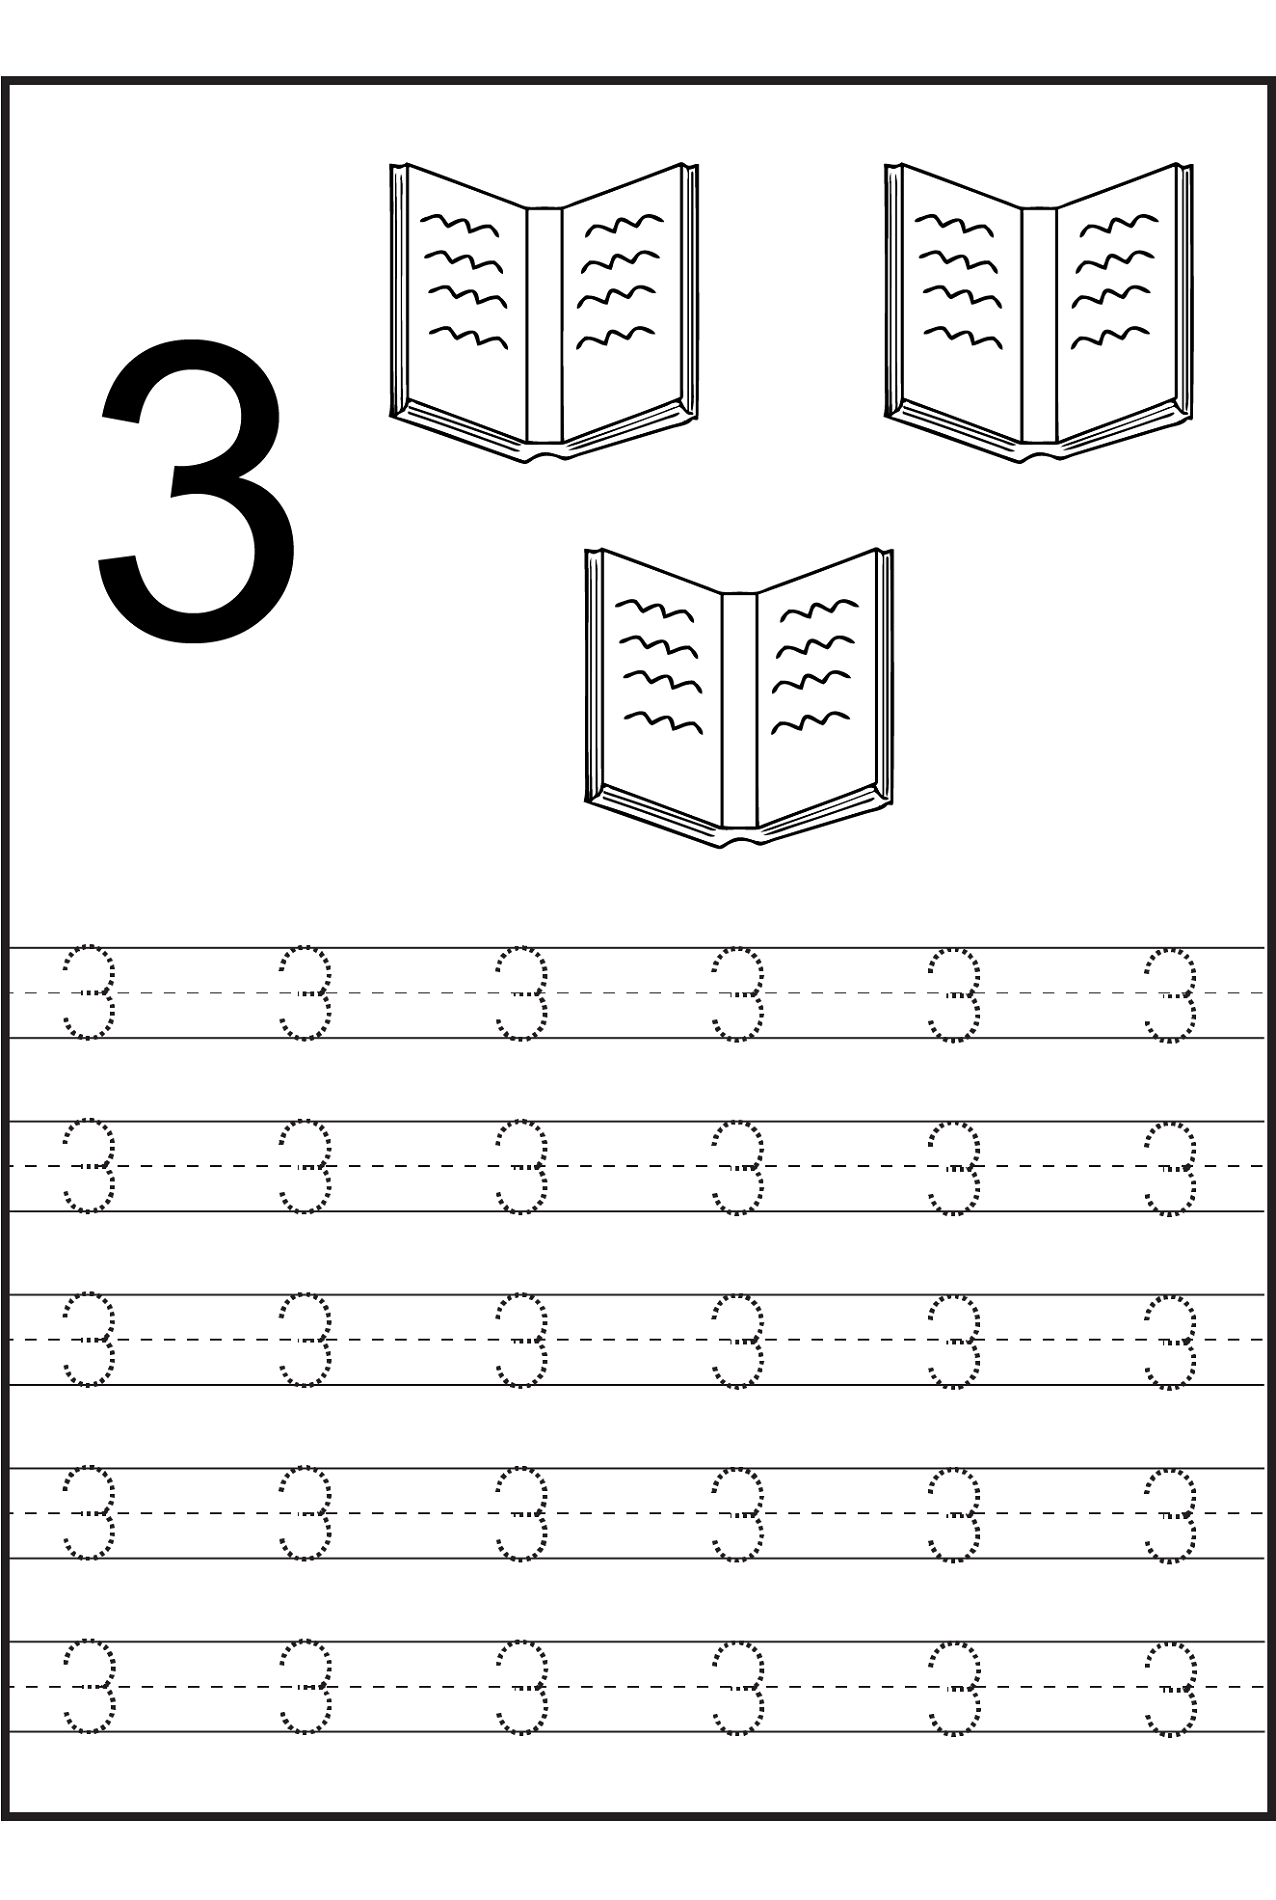 medium resolution of Worksheets For 2 Year Olds Number 3 Sarmad S Activities   Learning  worksheets